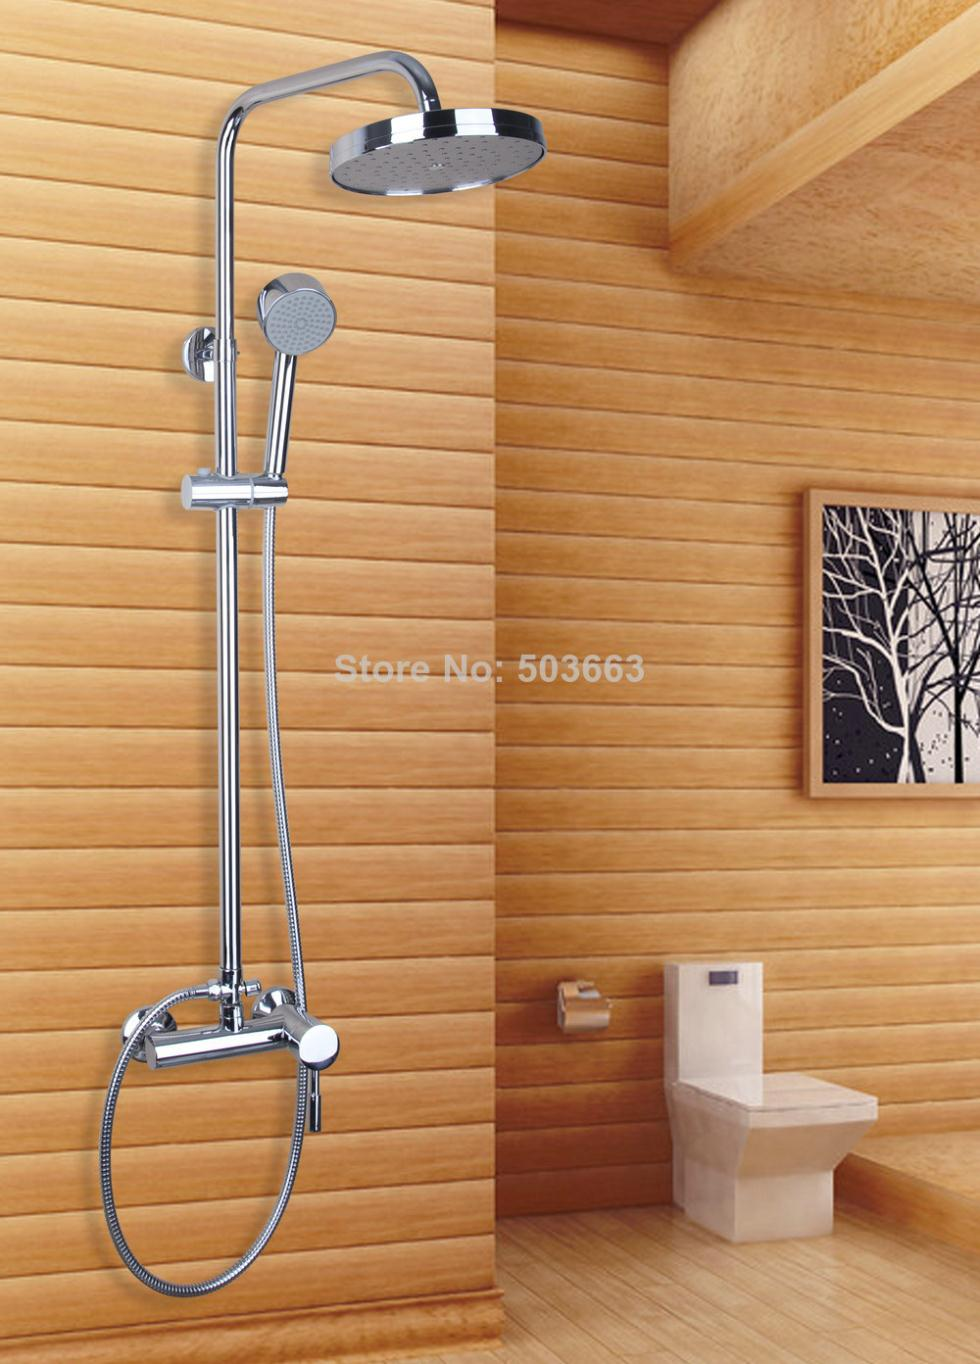 rain water brass modern on tub set aliexpress wholesale new item improvement retail bathroom group system chrome home showers from rainfall and wall head boosting alibaba mixer faucets pressure in mount com shower only